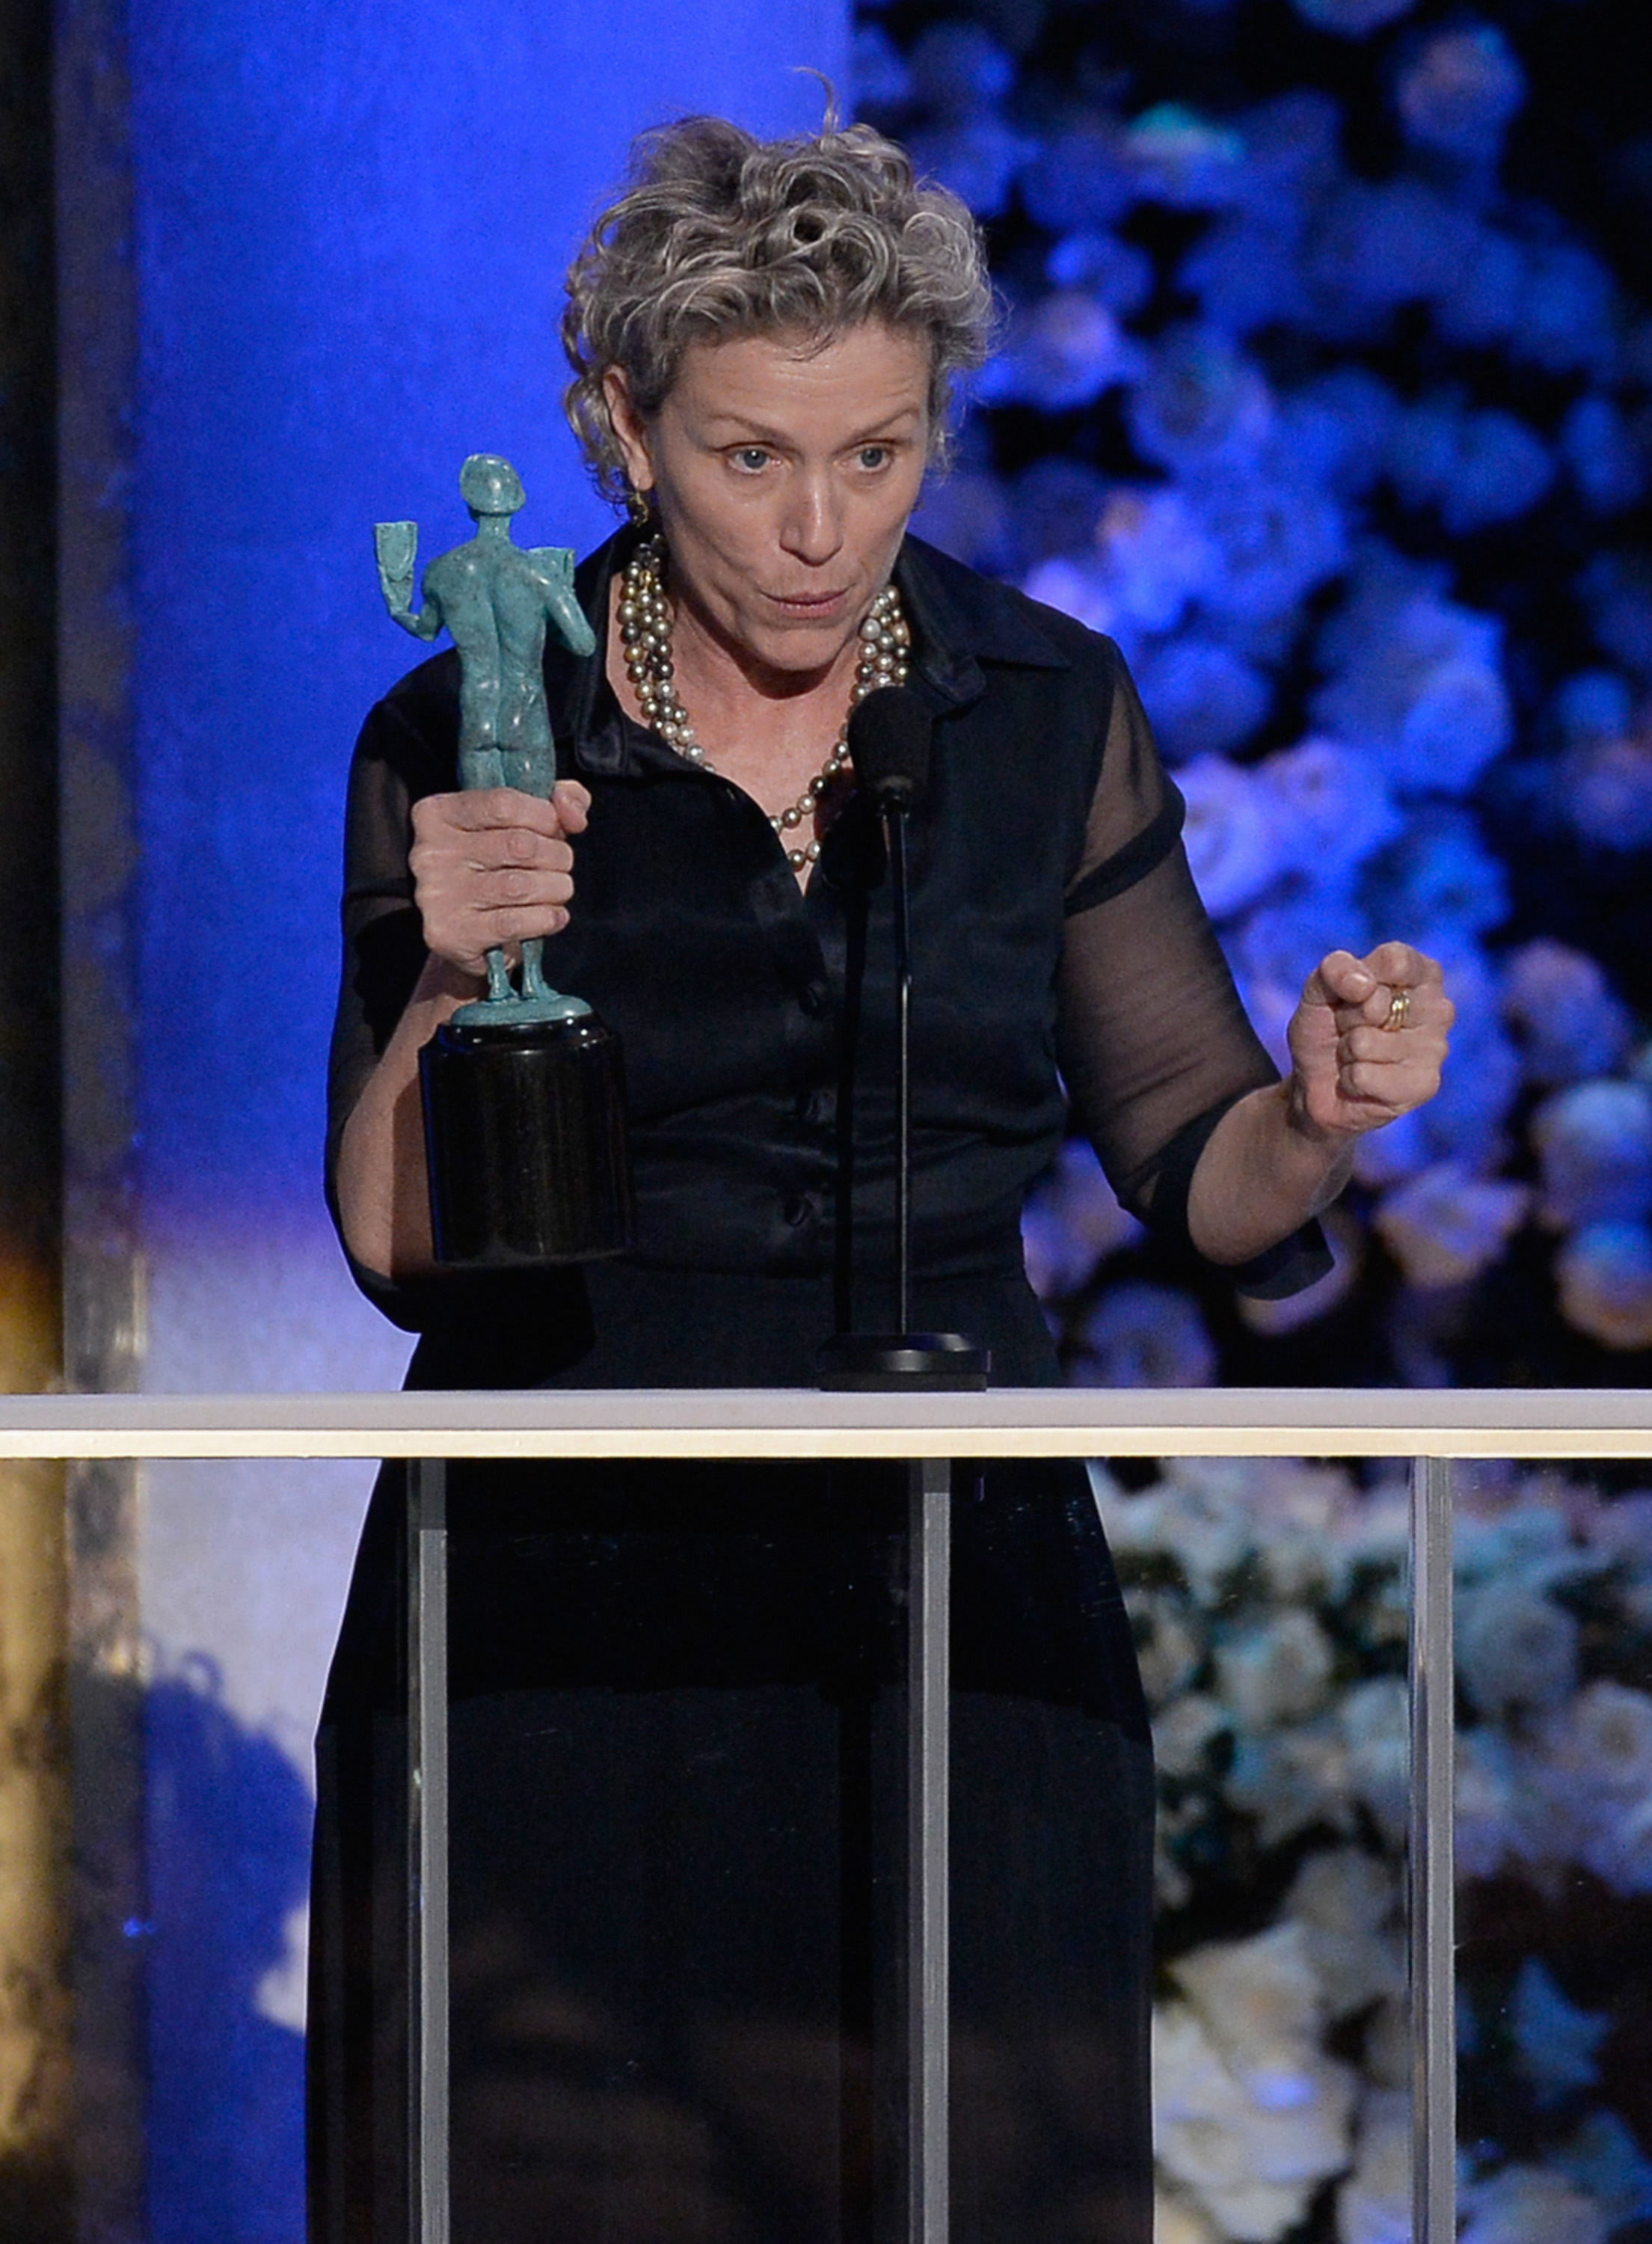 Frances-McDormand-accepts-the-award-for-Outstanding-Performance-by-a-Female-Actor-in-a-Miniseries-or-Television-Movie-onstage-at-the-21st-Annual-Screen-Actors-Guild-Awards-at-The-Shrine-Auditorium-on-January-25-2015-in-Los-Angeles